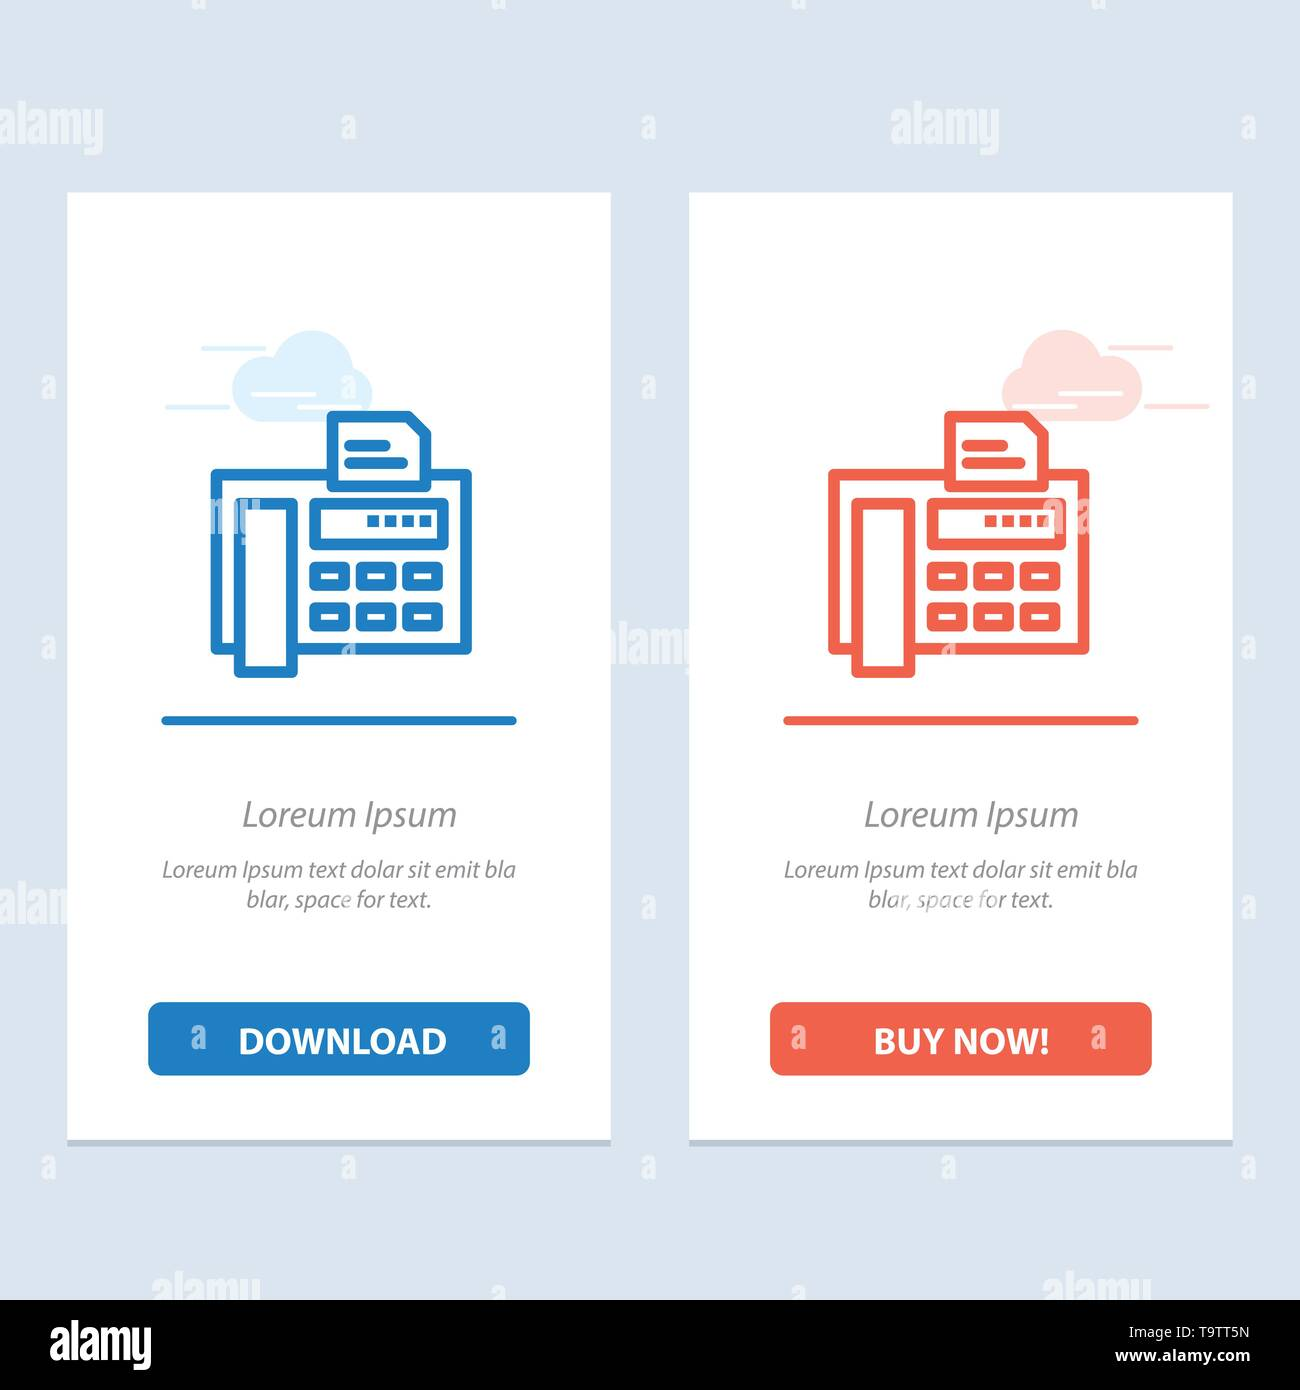 Fax, Phone, Typewriter, Fax Machine  Blue and Red Download and Buy Now web Widget Card Template - Stock Image